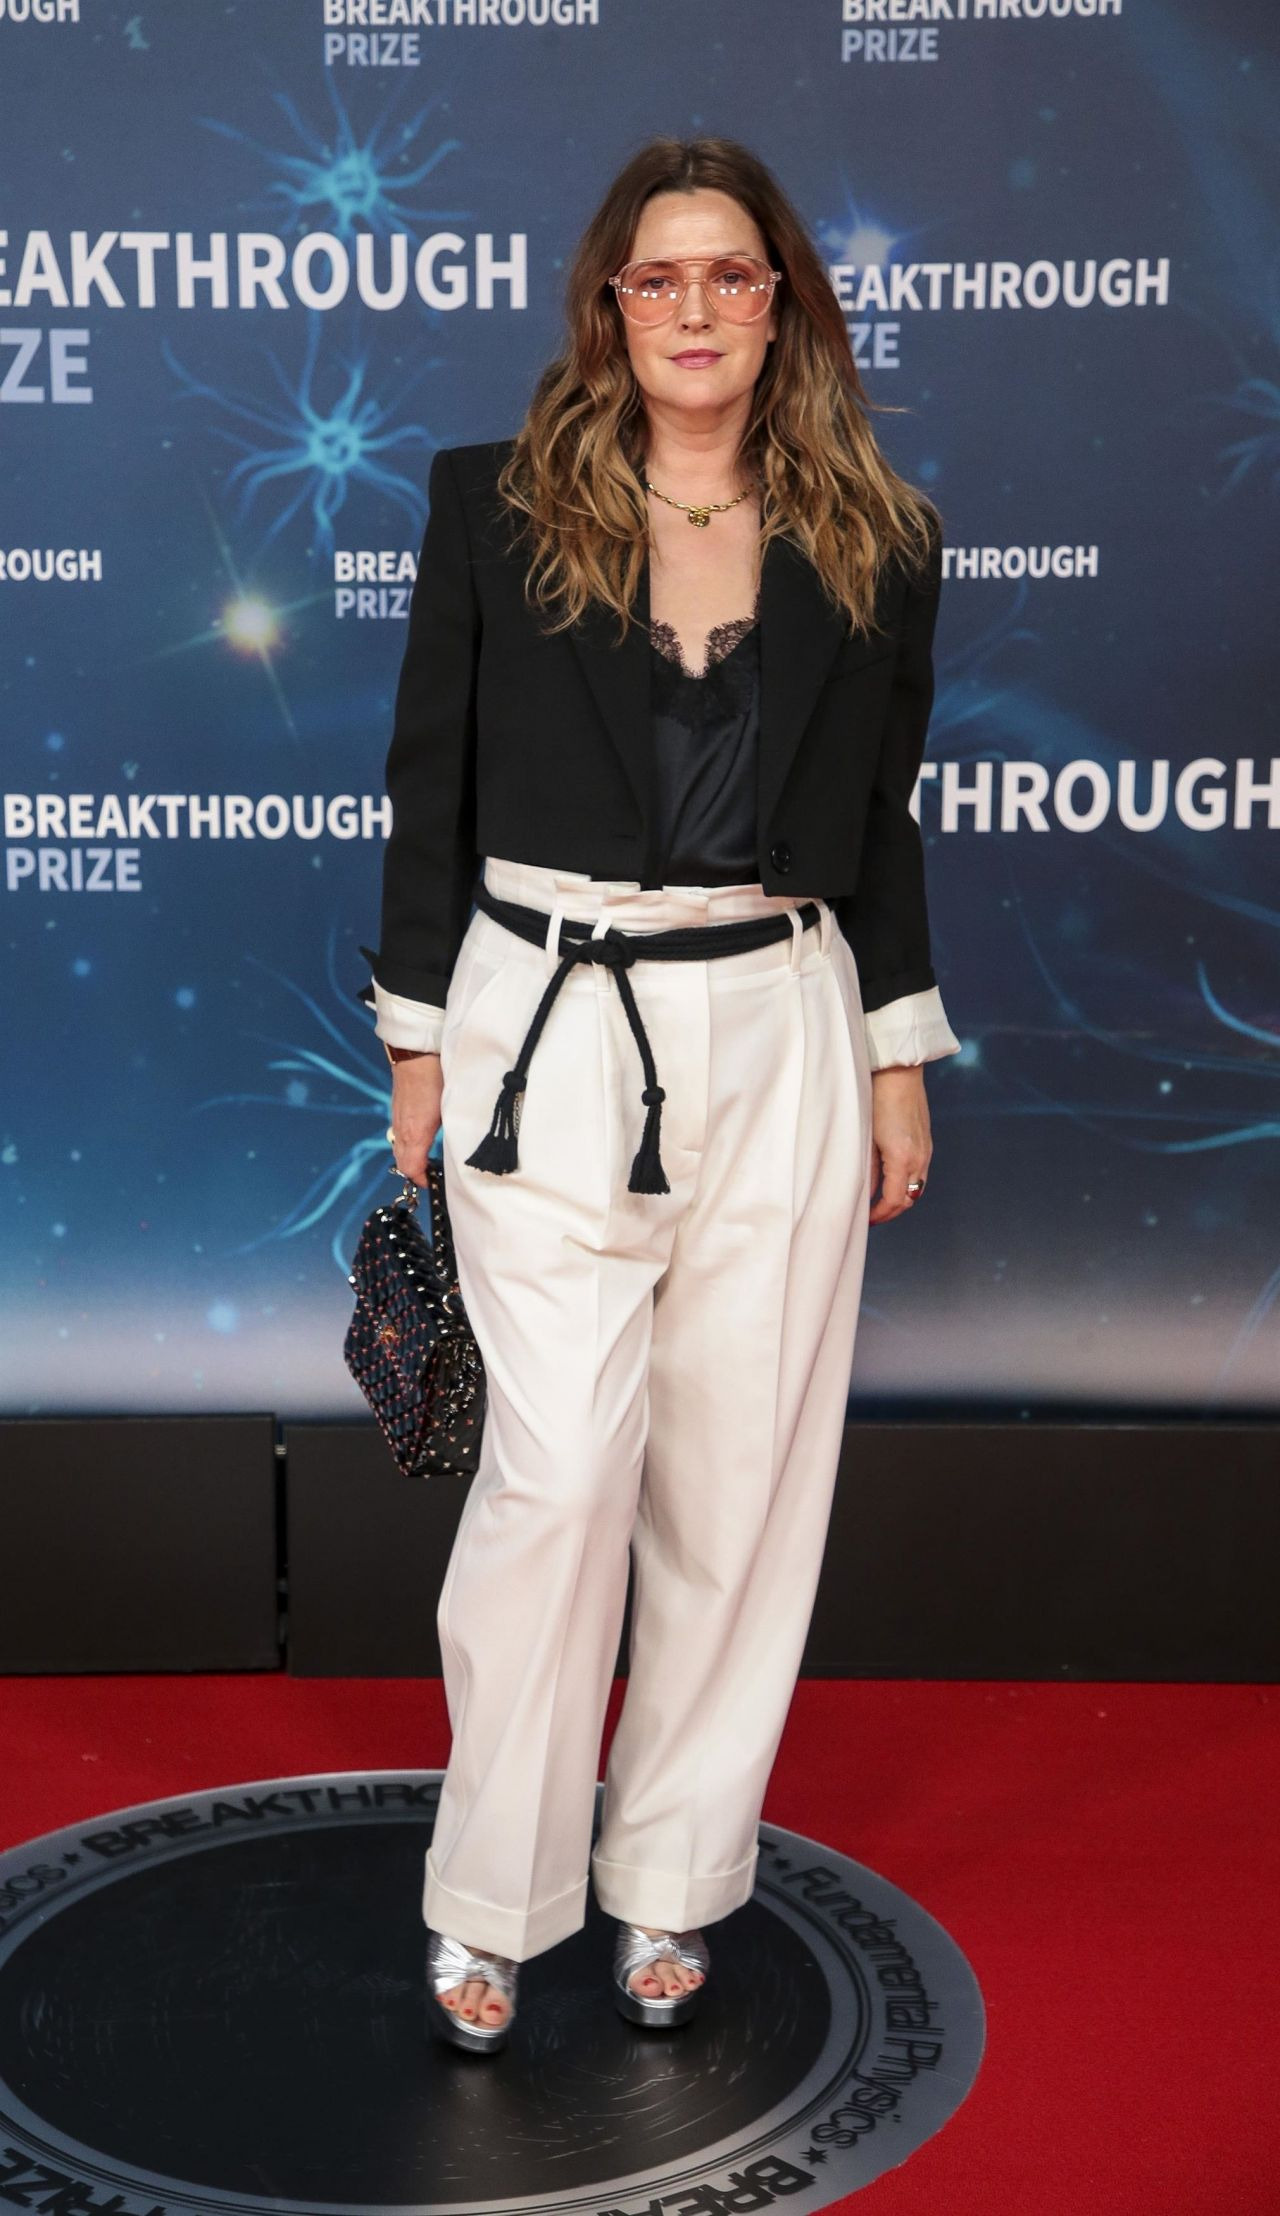 drew barrymore 2020 breakthrough prize ceremony 9